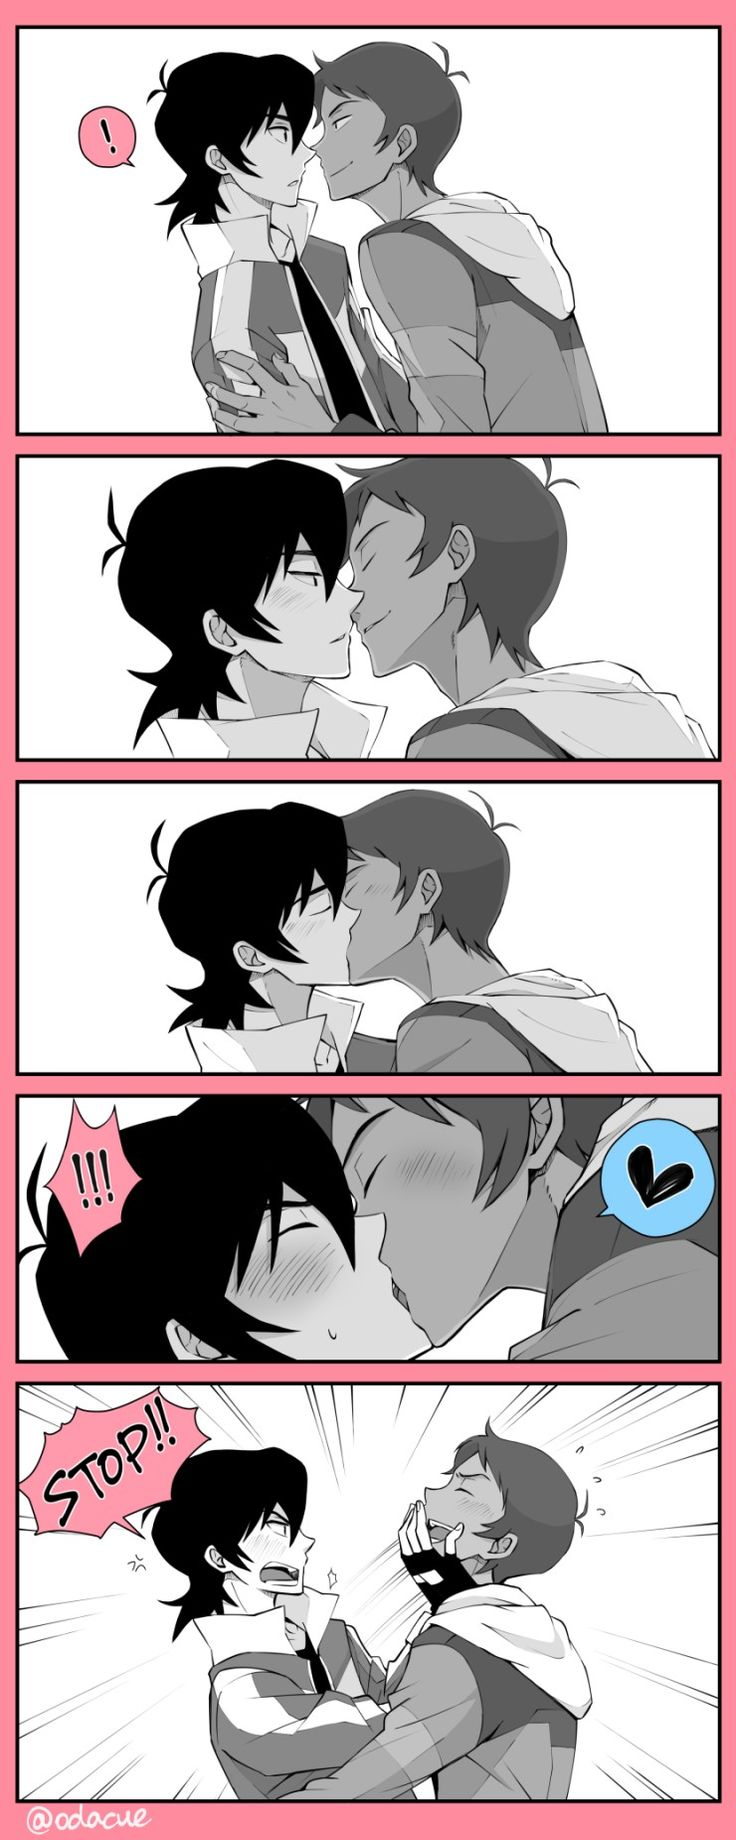 REMEMBER TO GET  CONSENT   BEFORE YOU KISS SOMEONE!